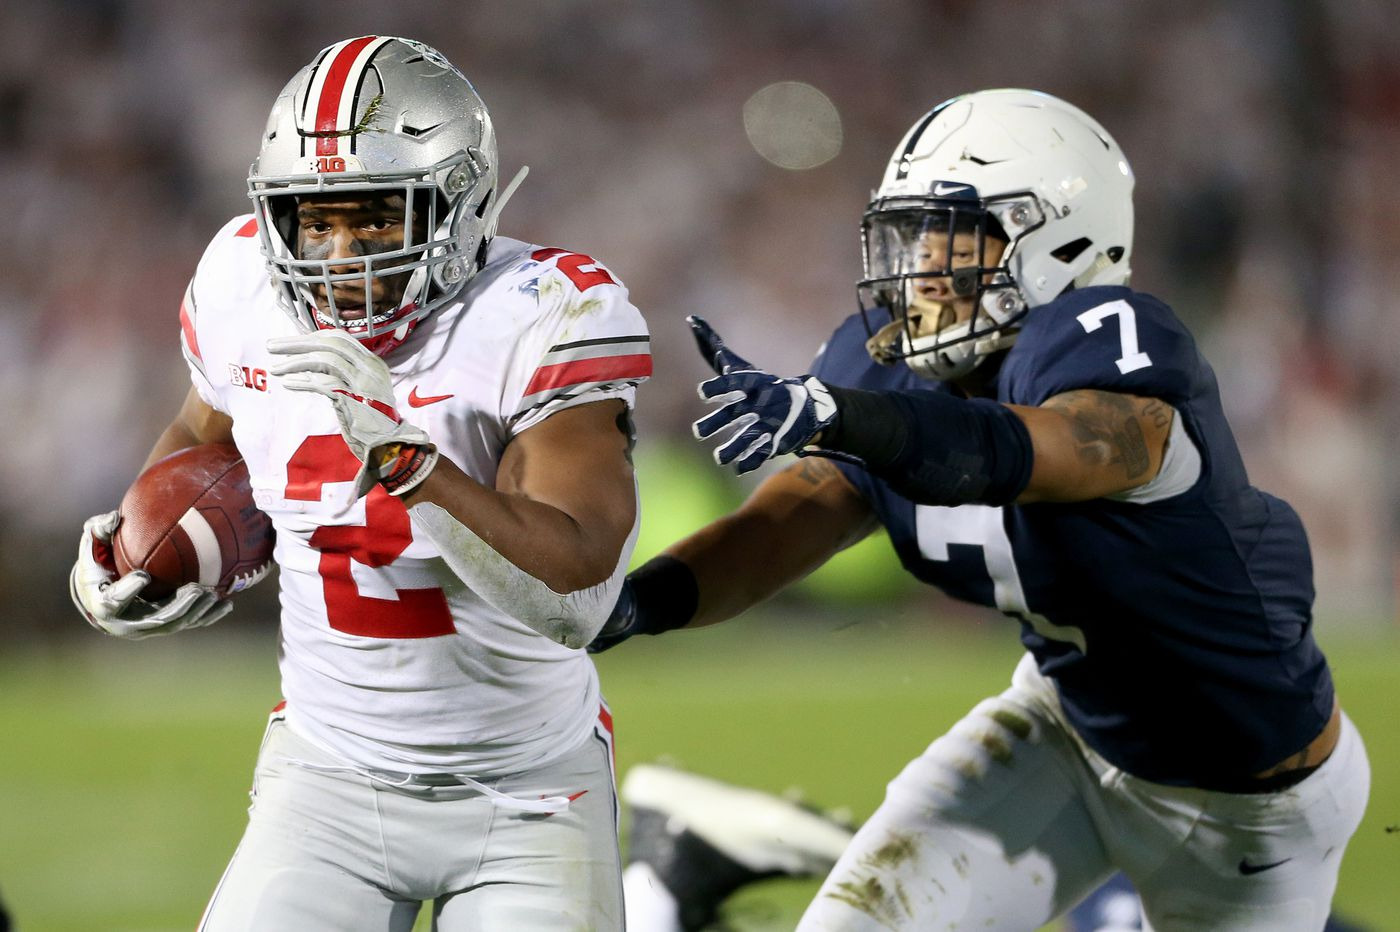 Penn State stunned by Ohio State's late surge in 27-26 Big Ten rivalry loss at Beaver Stadium